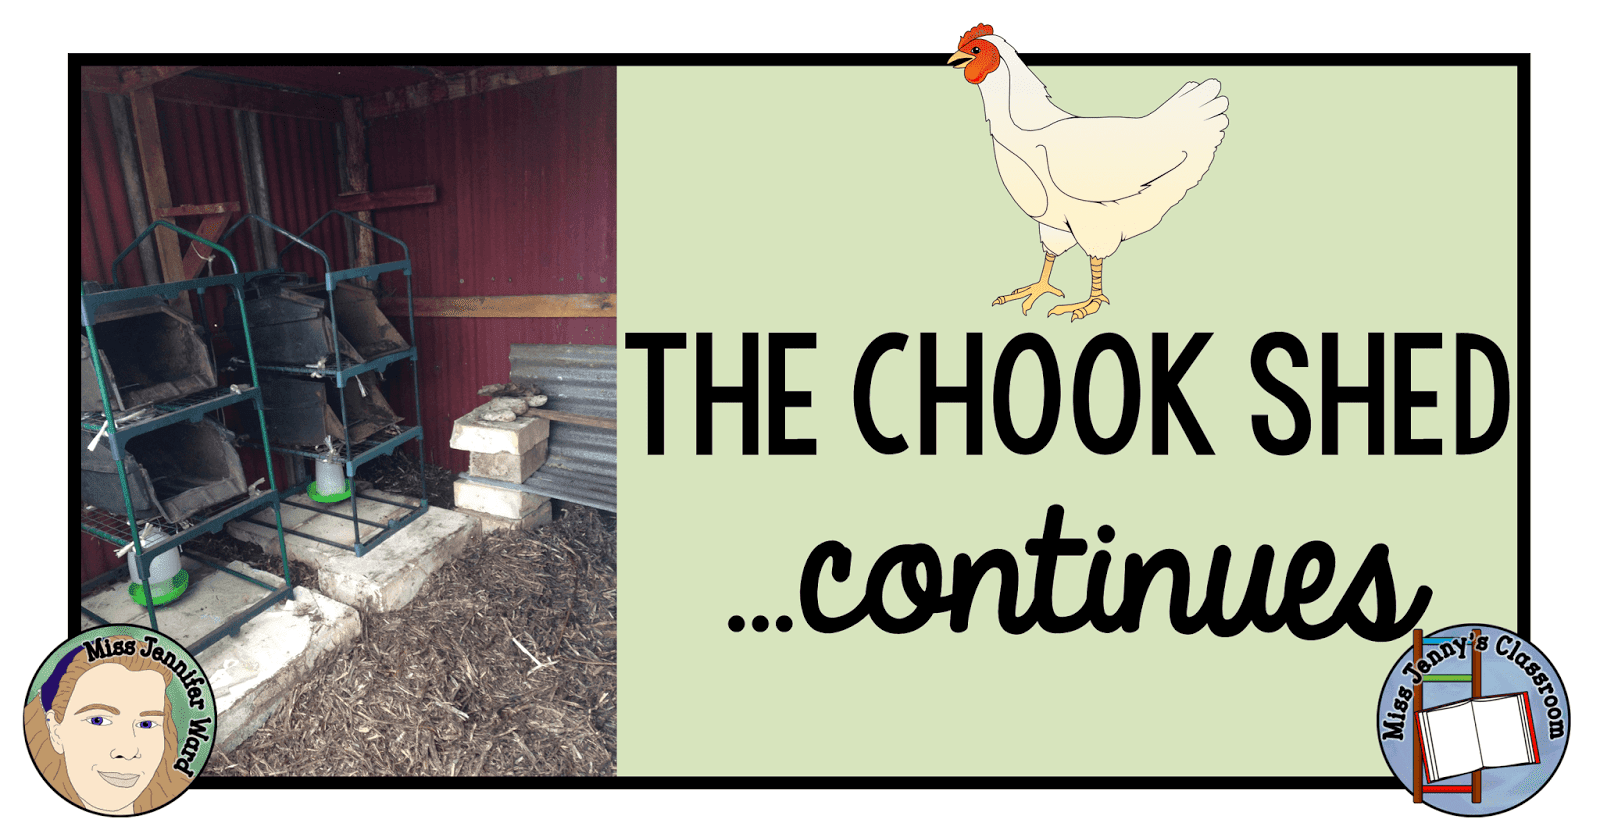 The Chook Shed Continues….